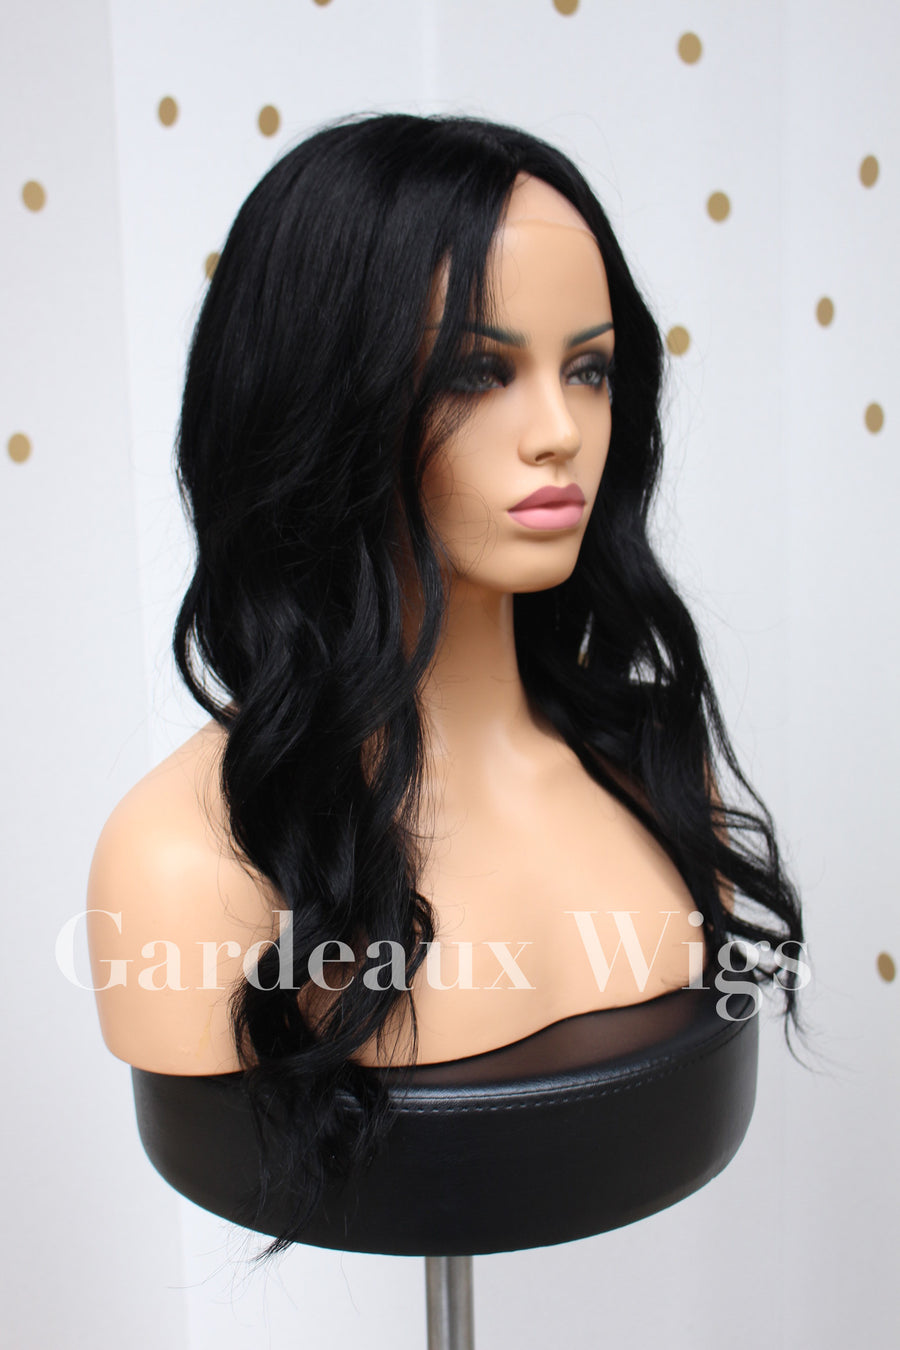 Color 1 Black Full lace Silk top 100% Human Hair Wig at Gardeaux Wigs